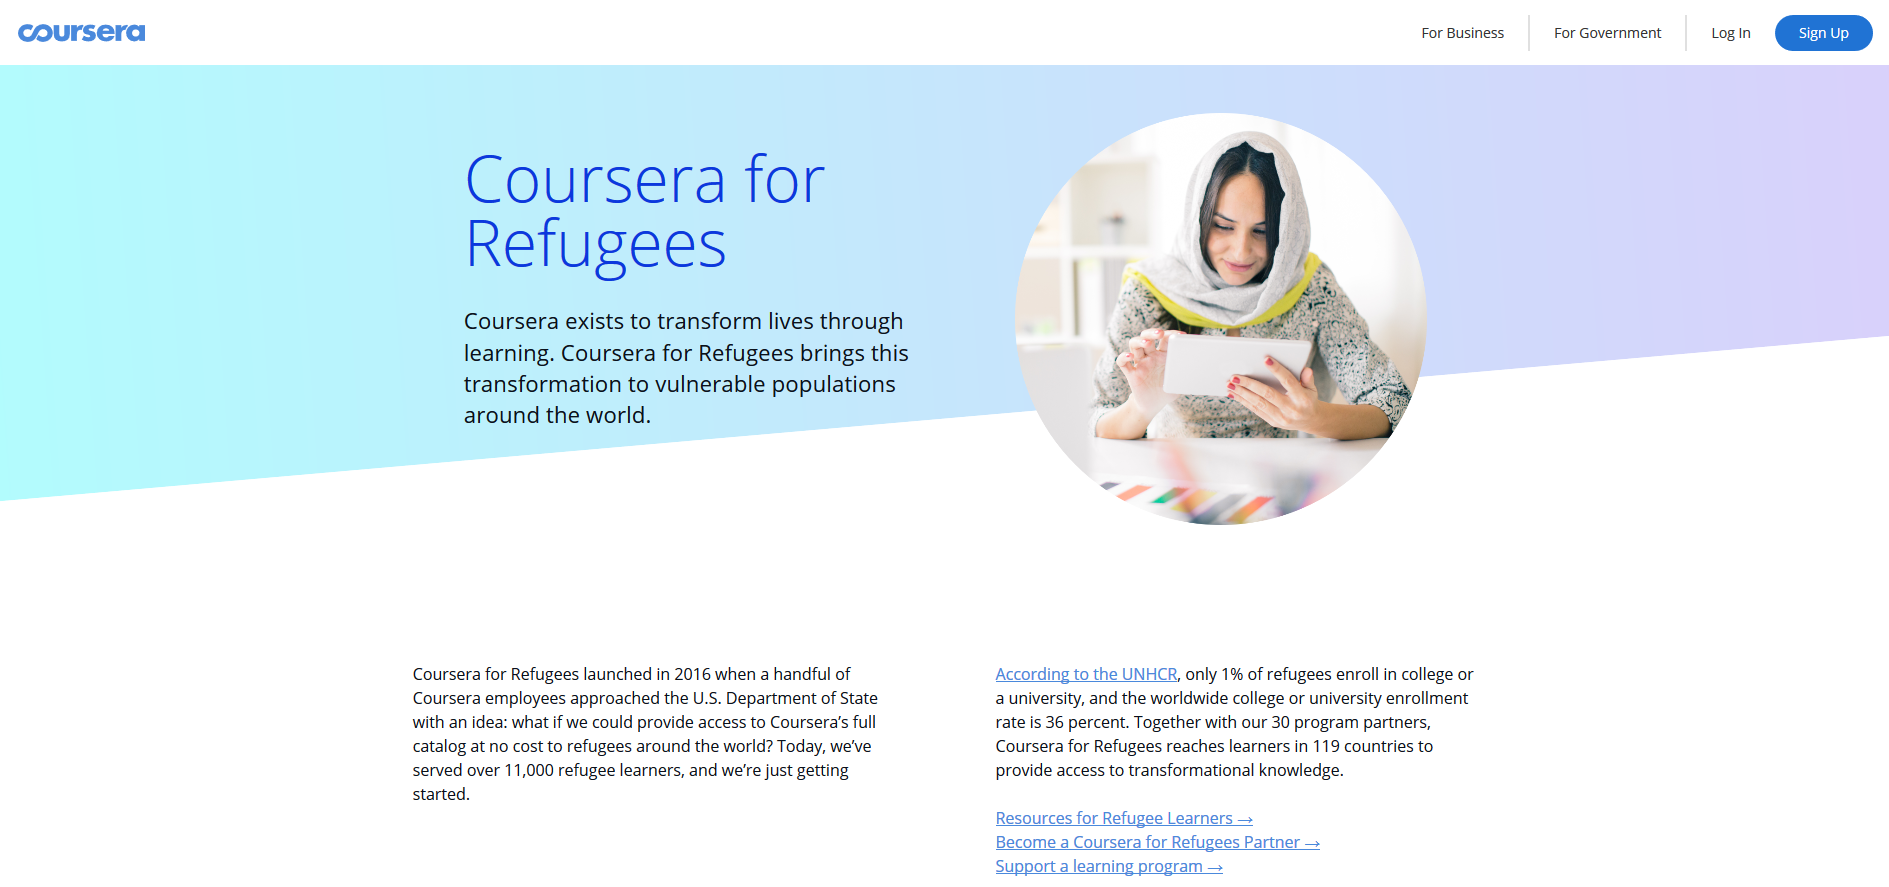 Coursera for Refugees